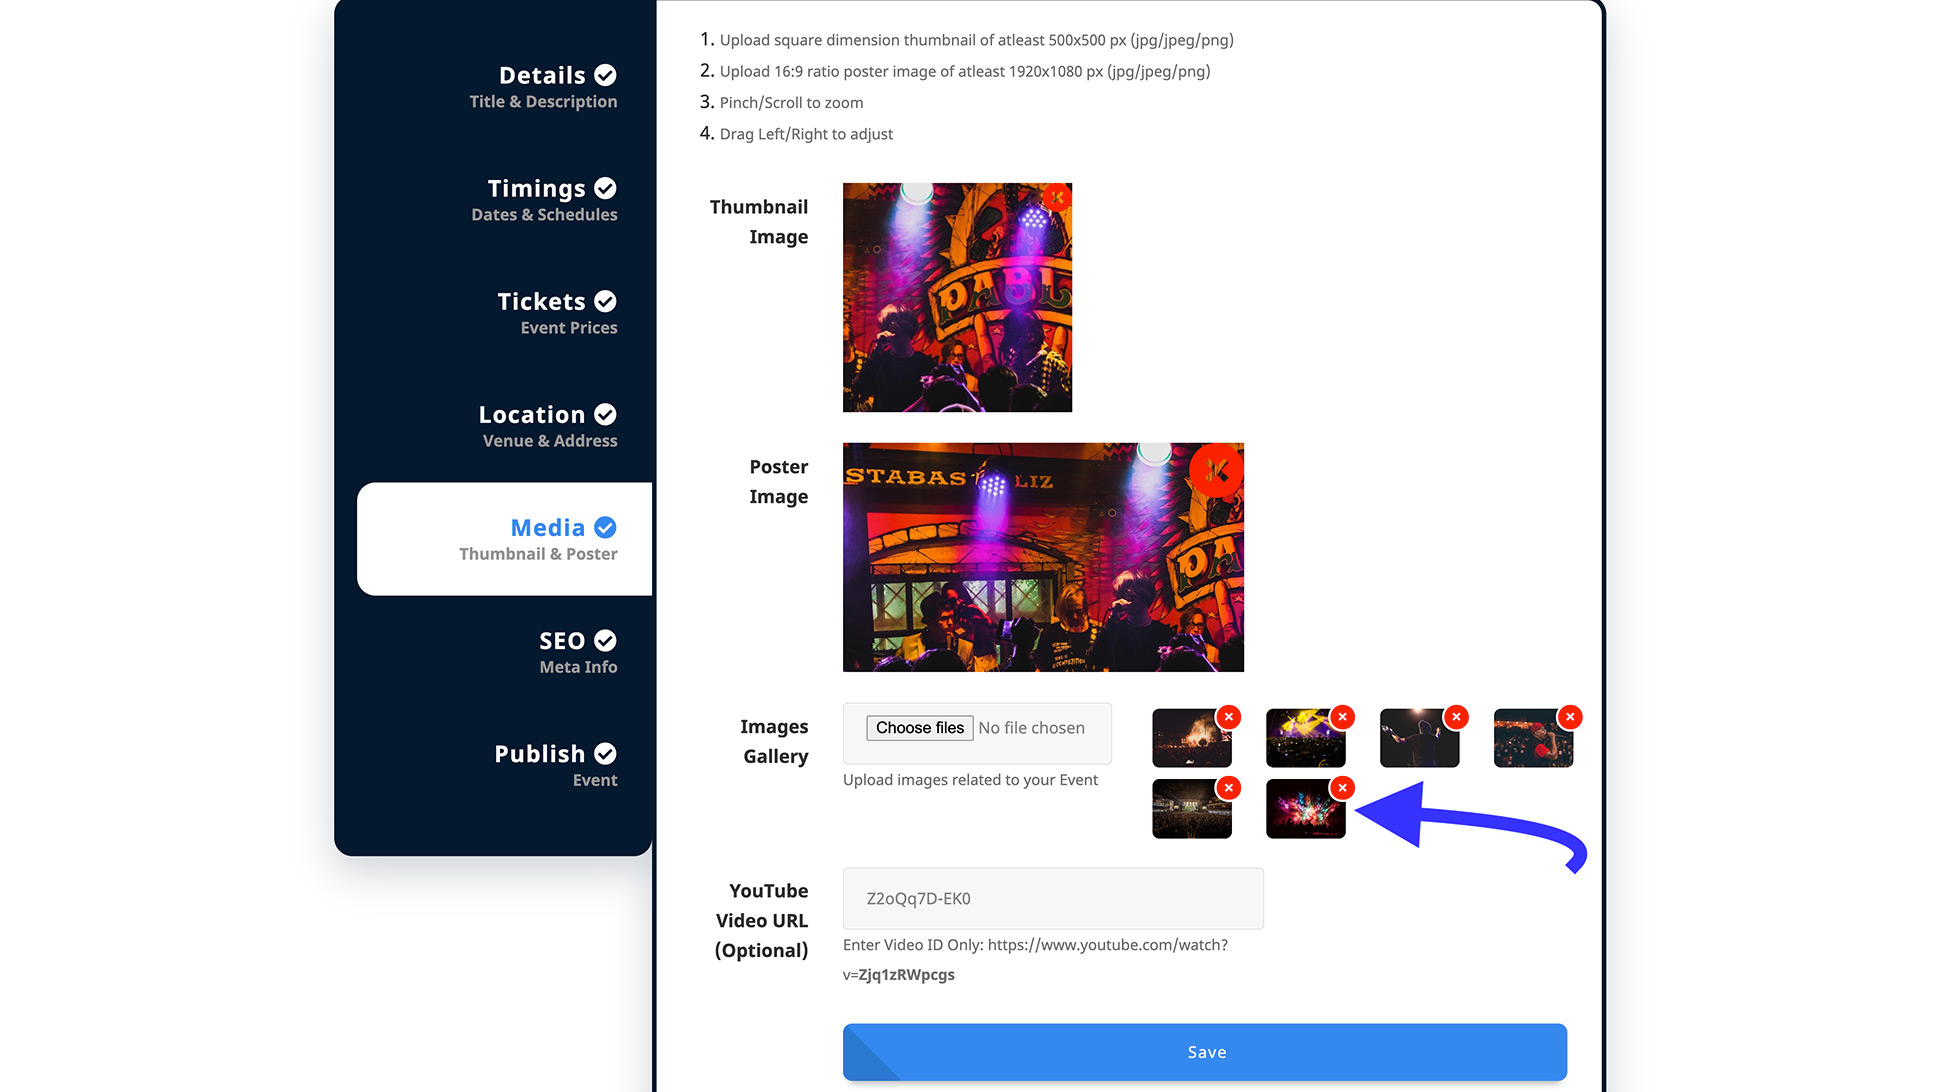 Add/Remove Gallery images